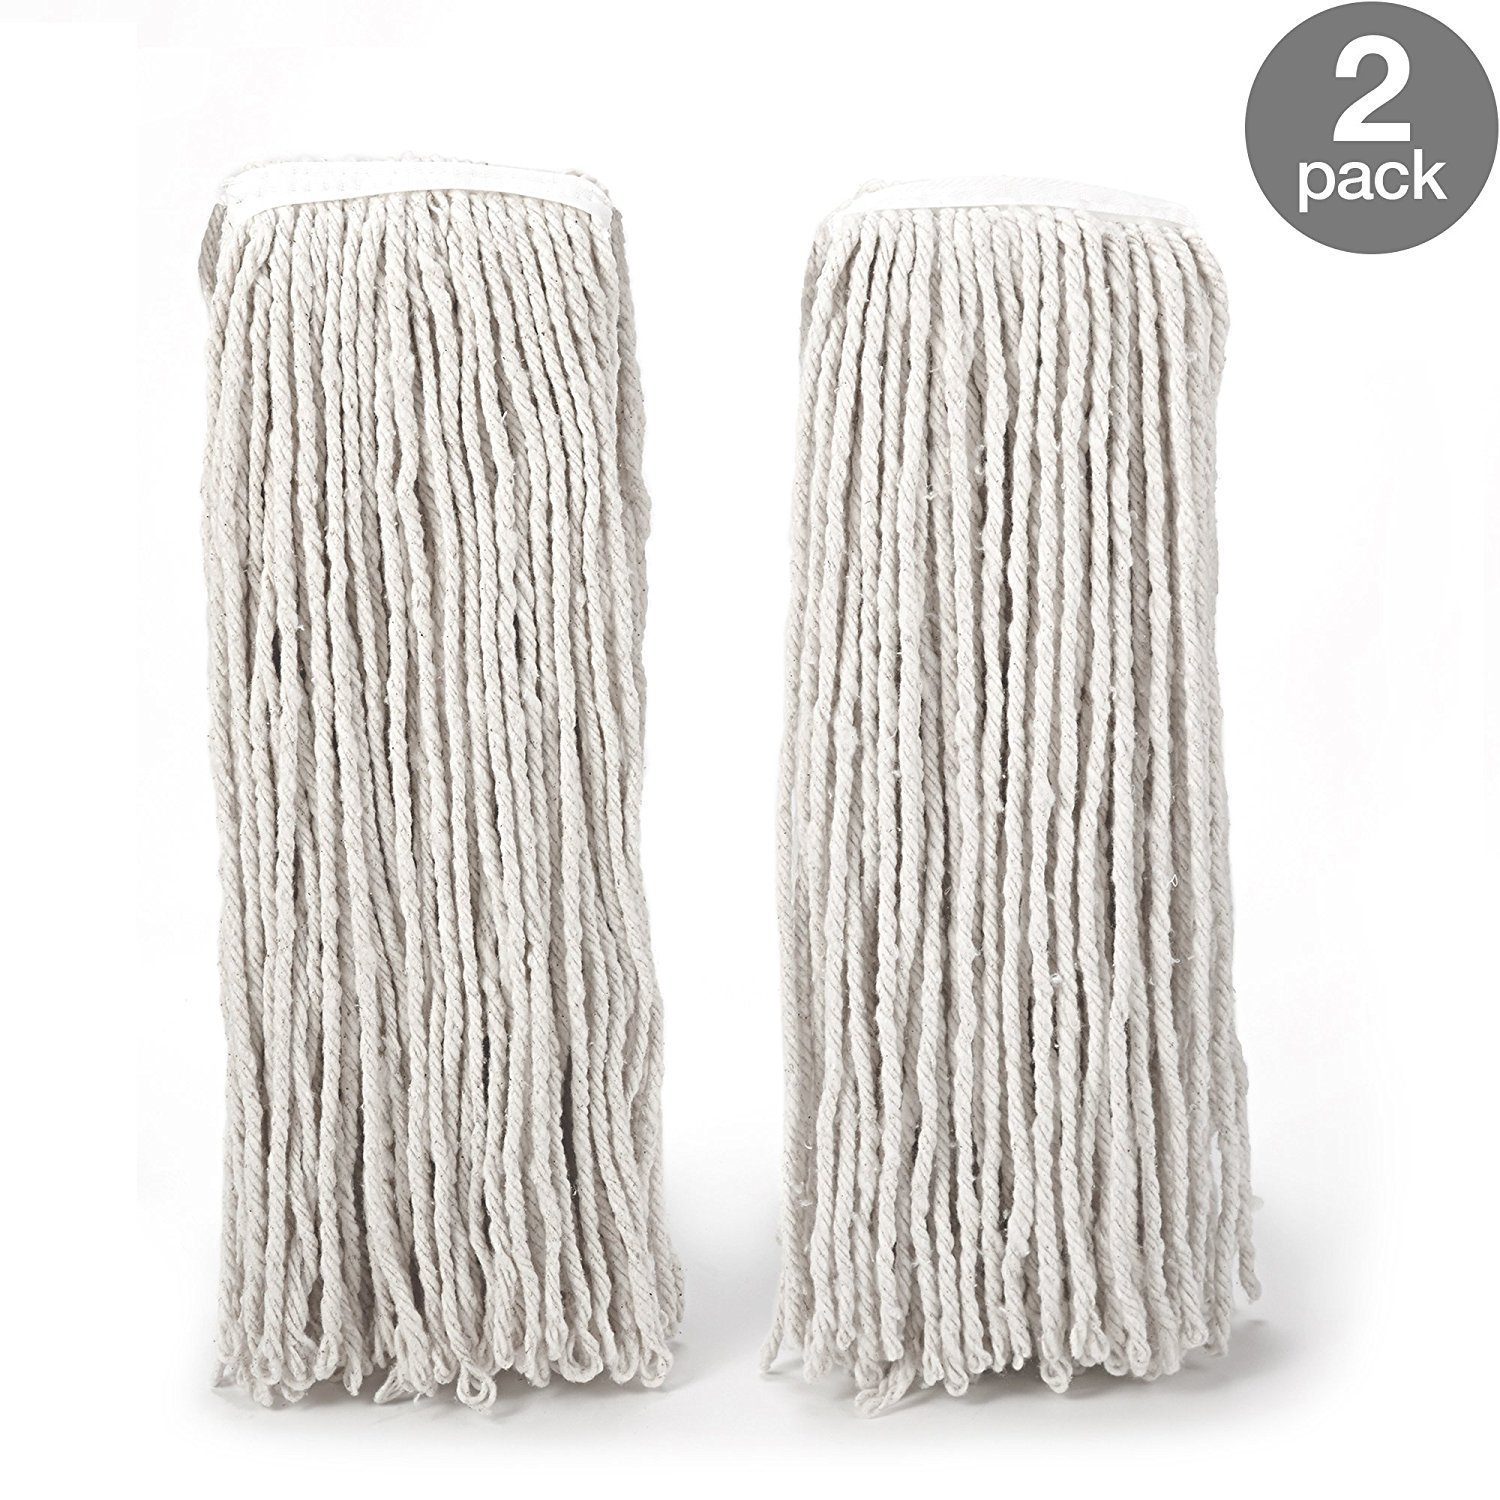 O-Cedar Heavy Duty Looped-End String Mop Refills (2 Pack)